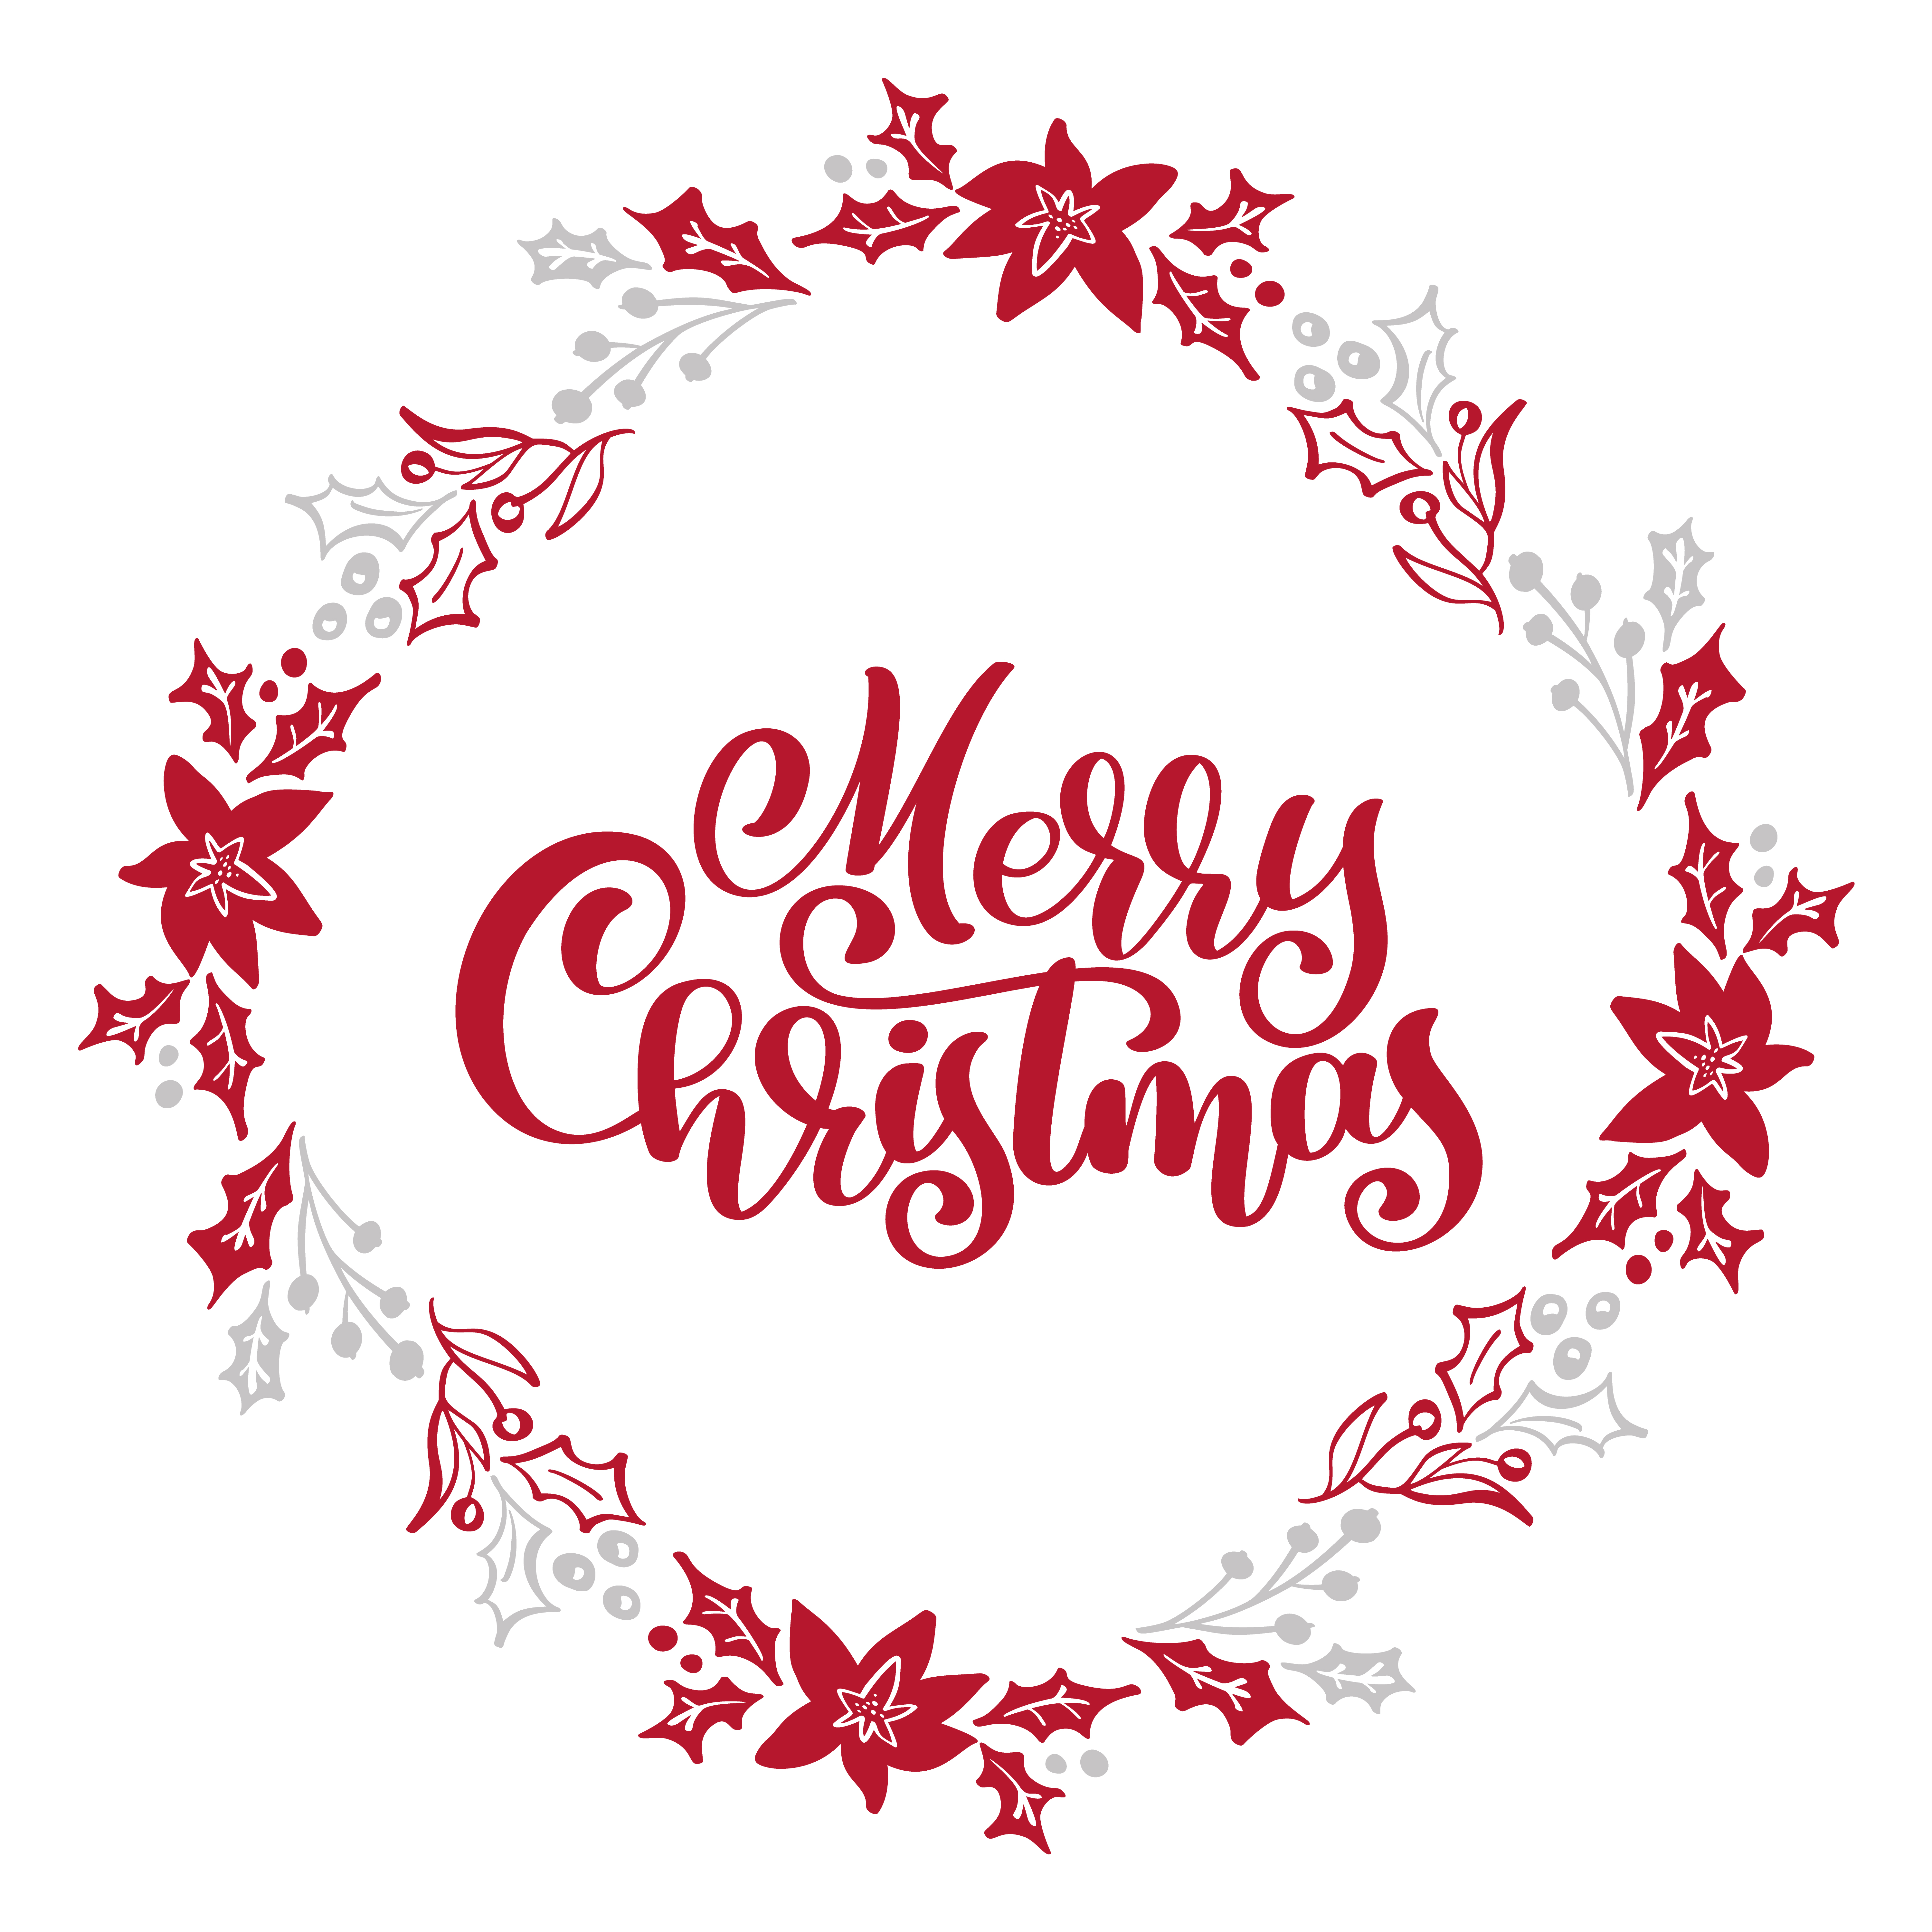 merry christmas calligraphy vector text in xmas floral